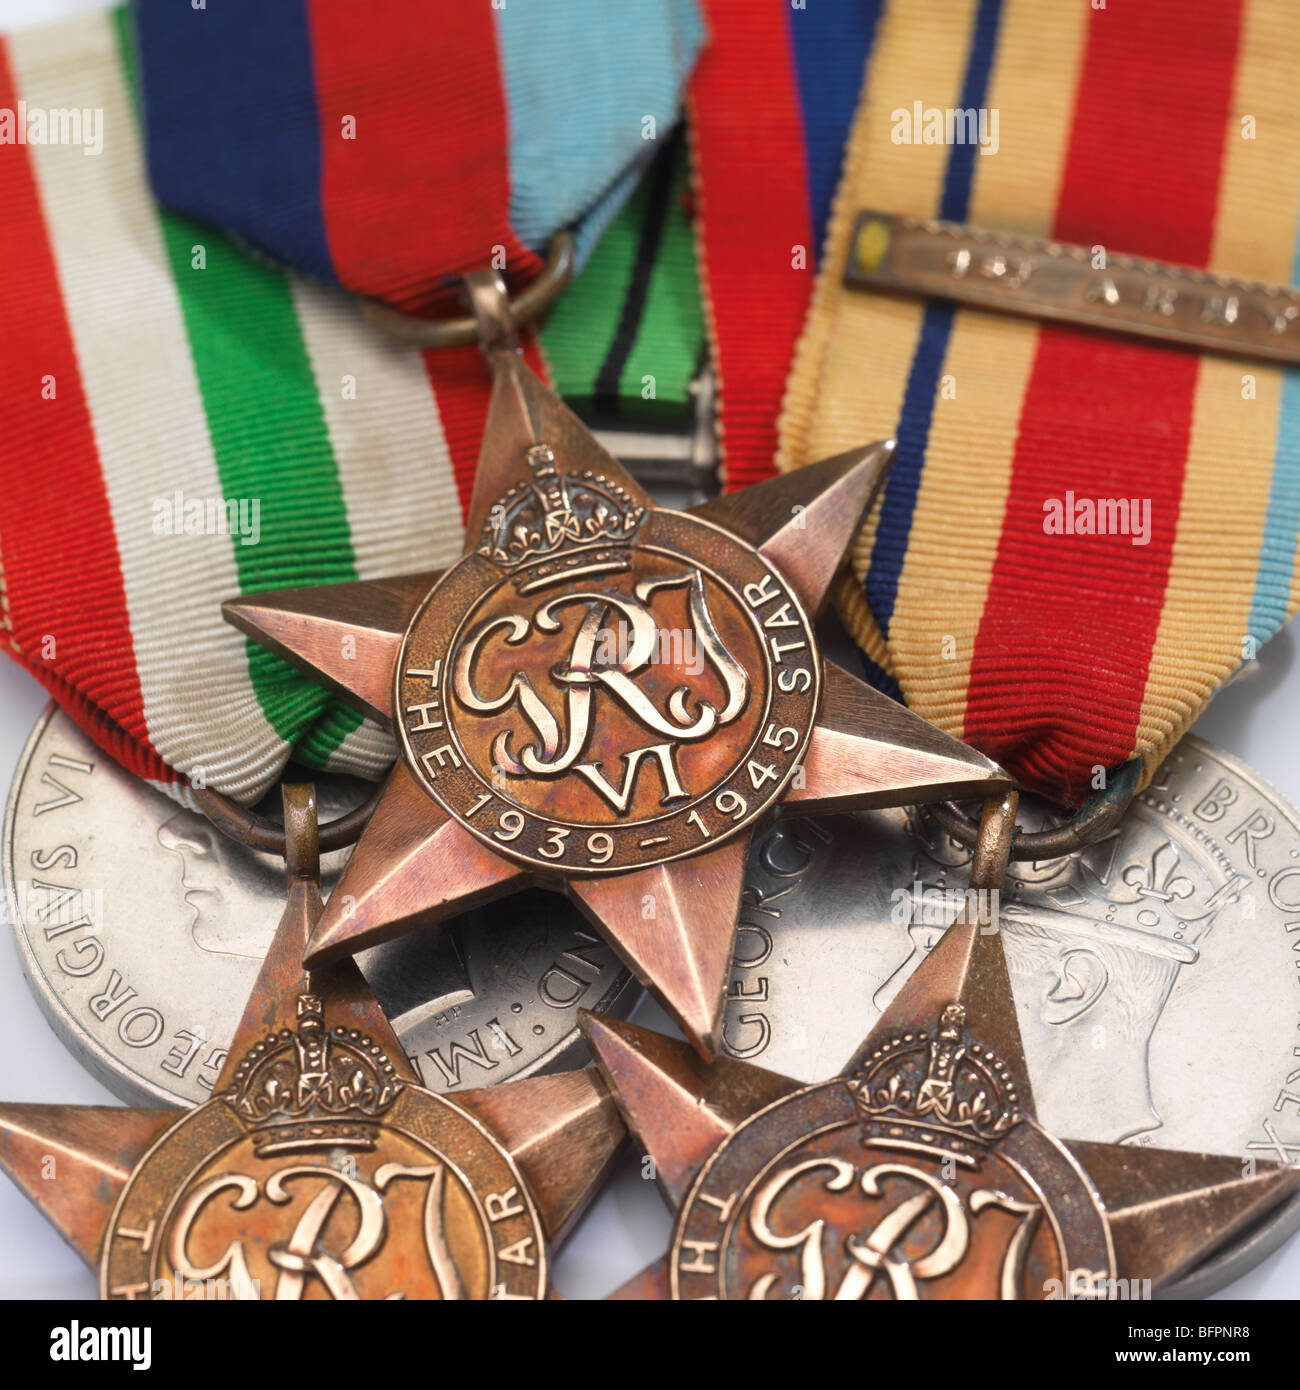 A group of war medals. - Stock Image